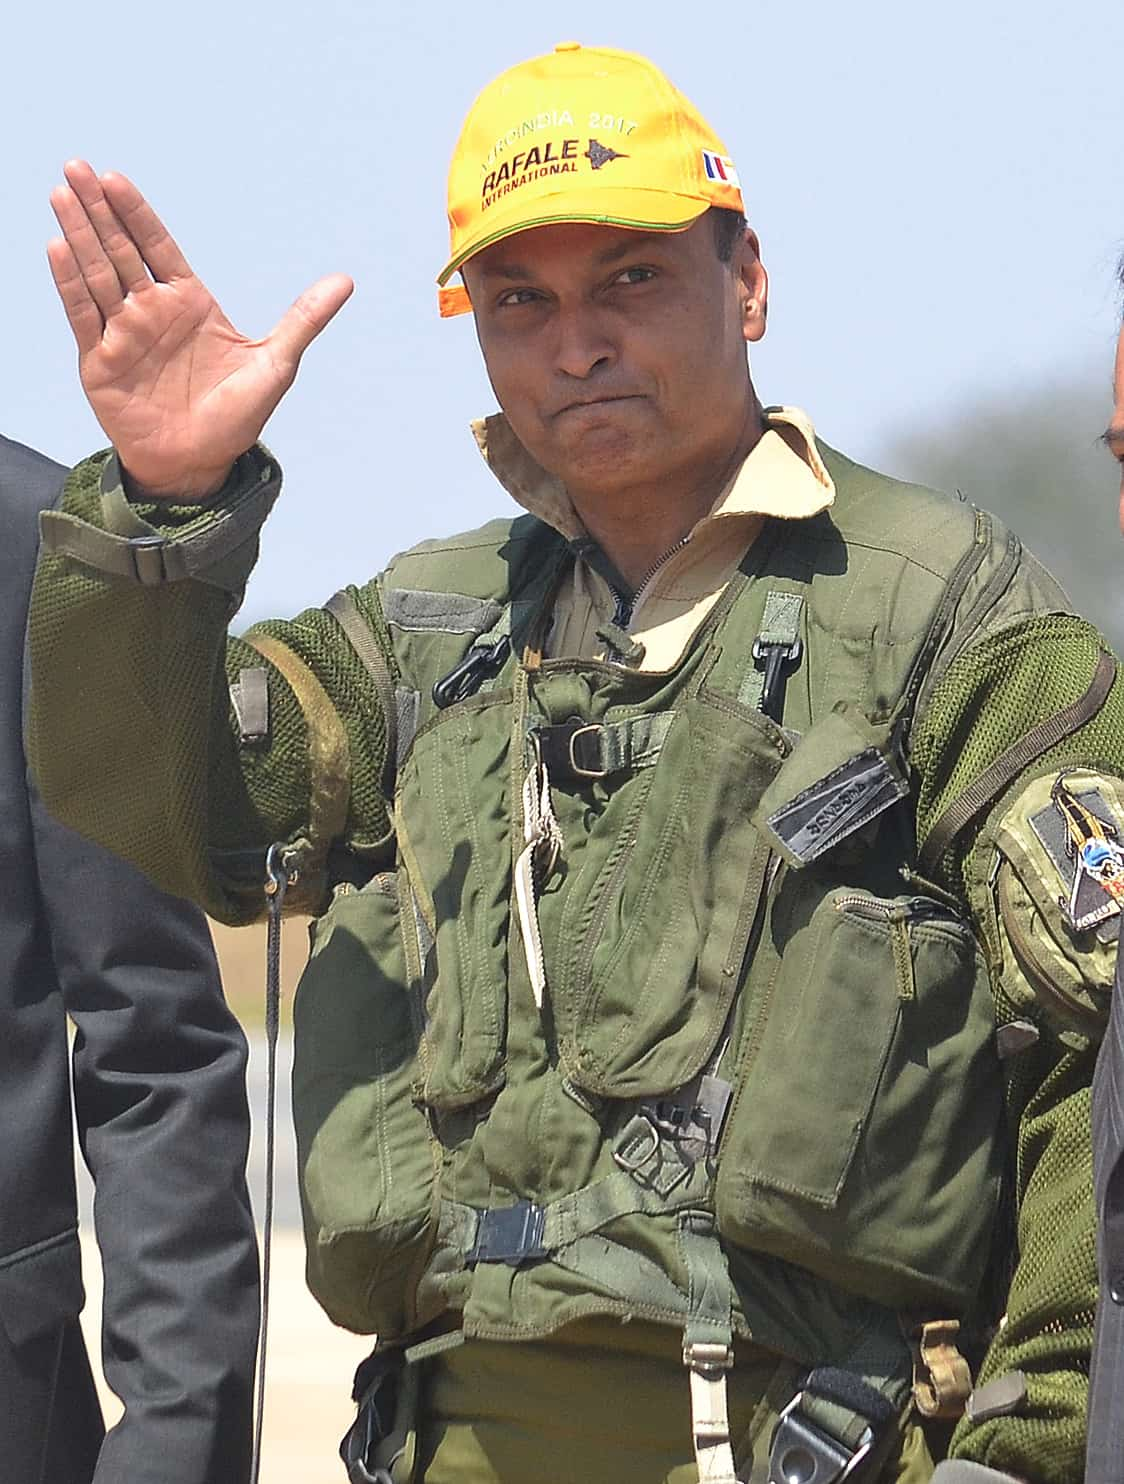 Ambani arrives to fly in the cockpit of a Rafale fighter during Aero India 2017